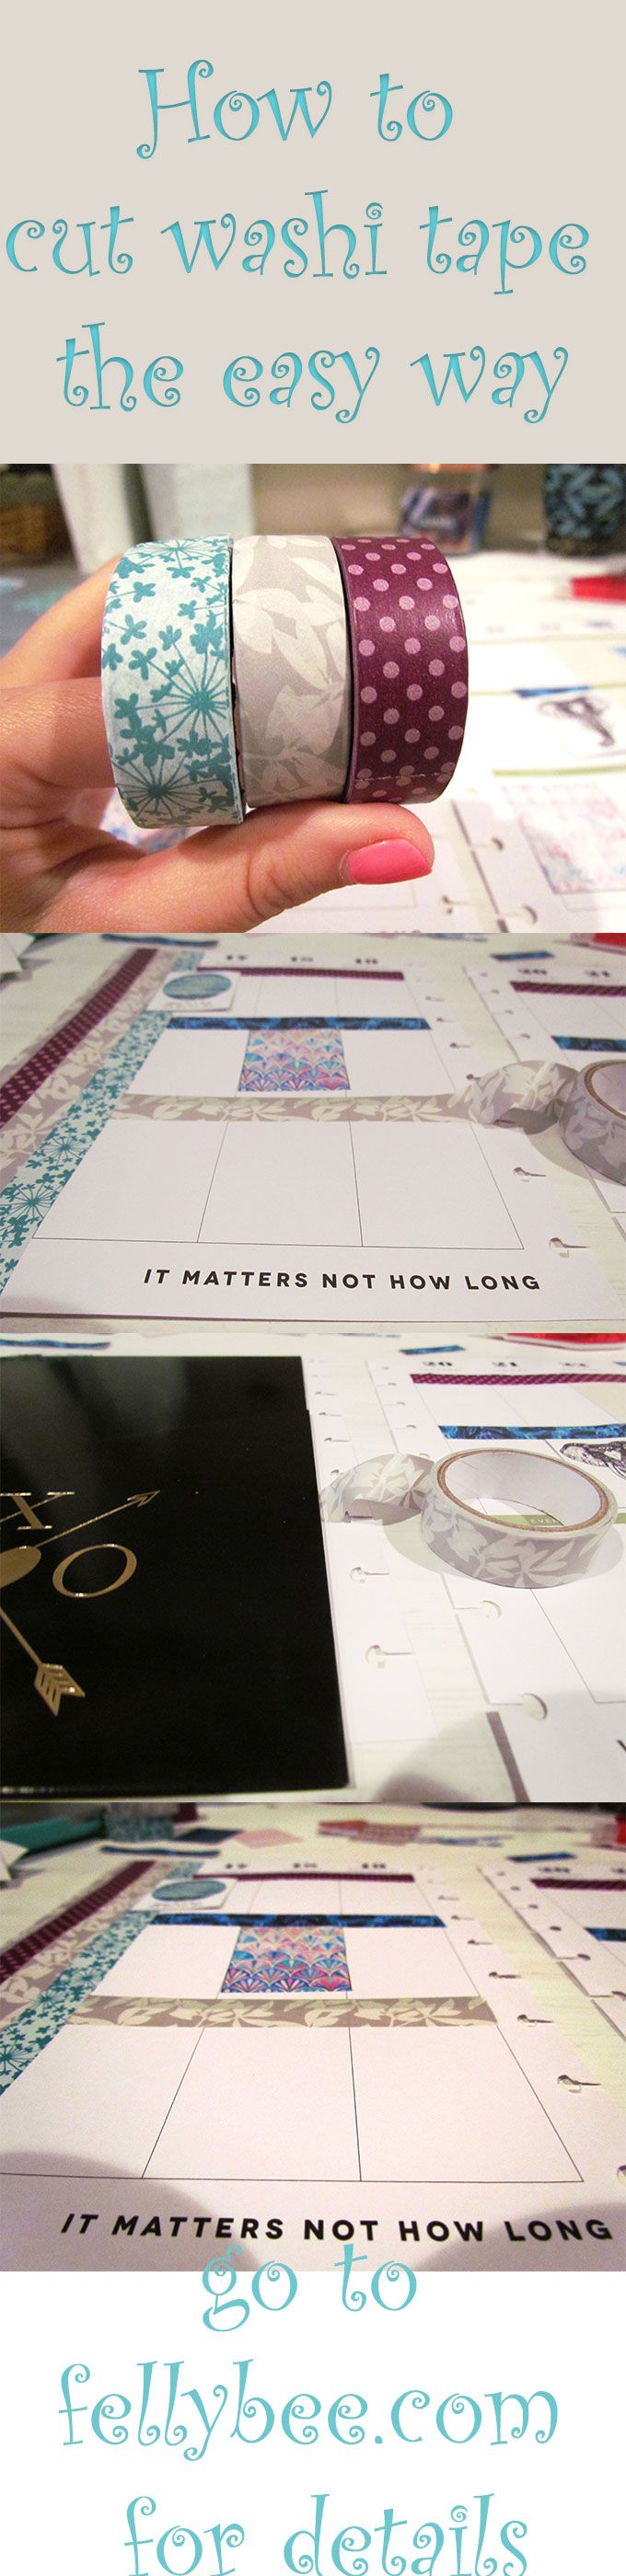 How to cut washi tape for glam planning!